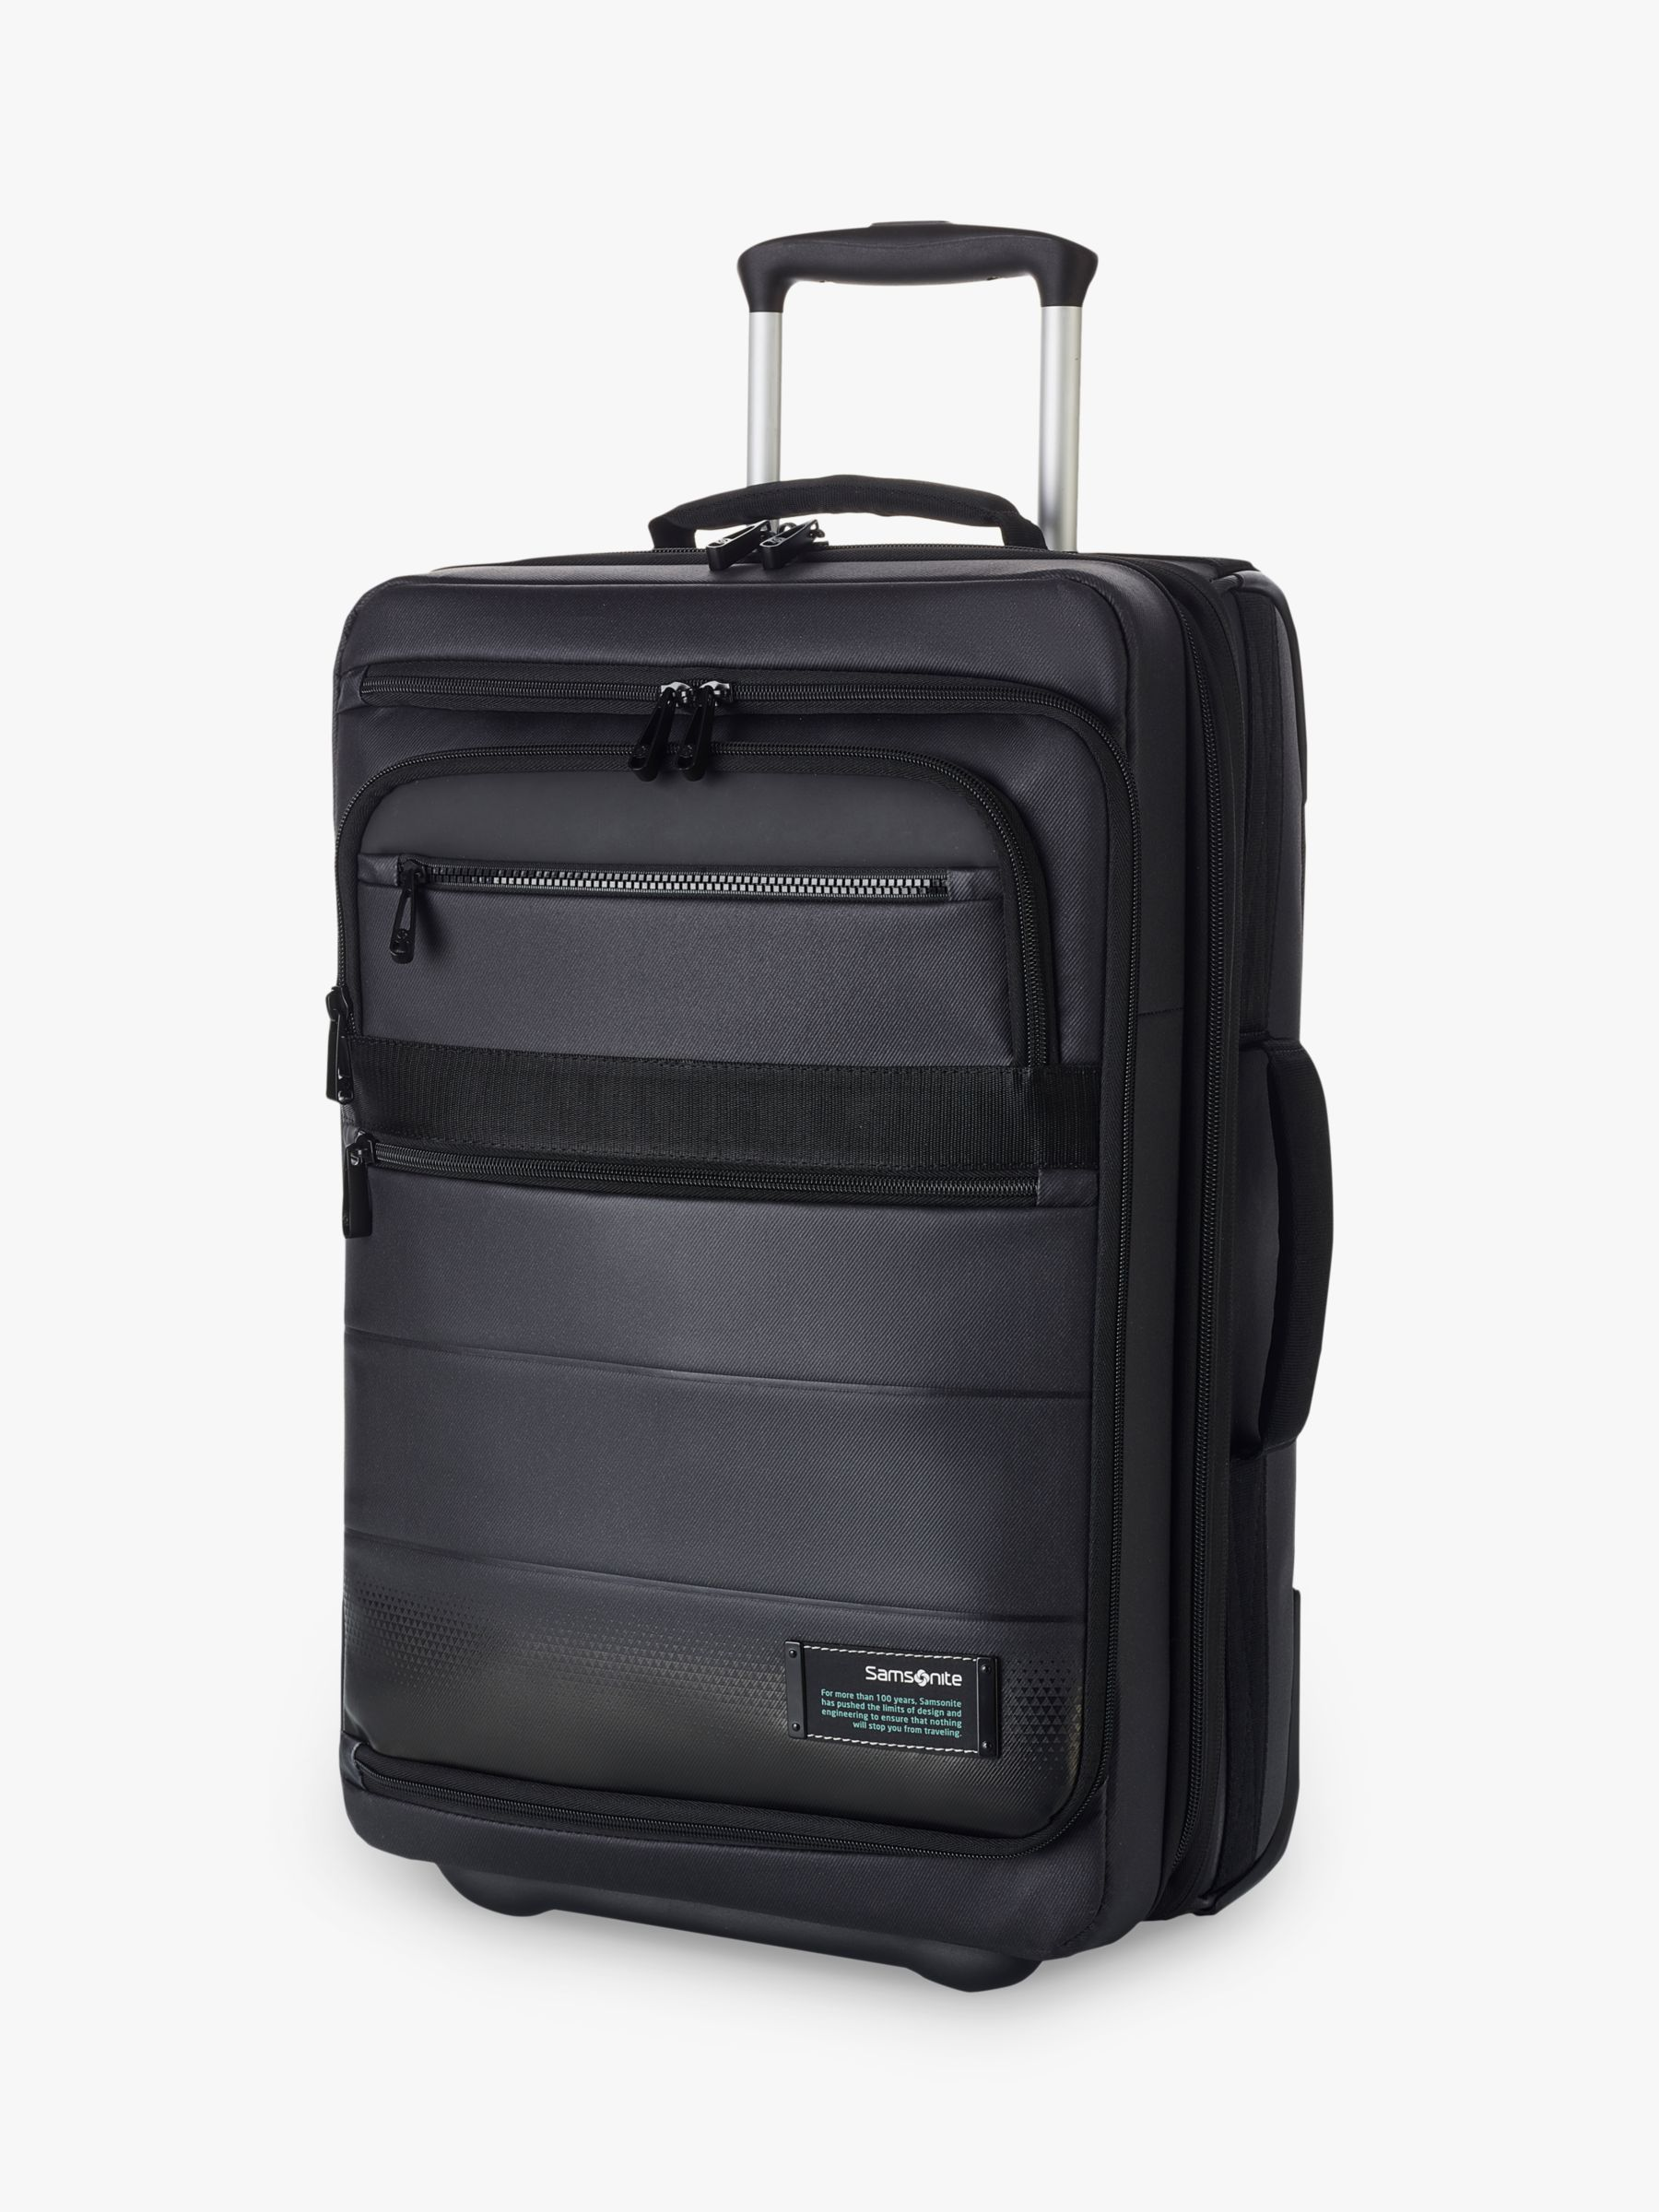 Samsonite Samsonite Cityvibe 2.0 Wheeled Office Bag, Jet Black